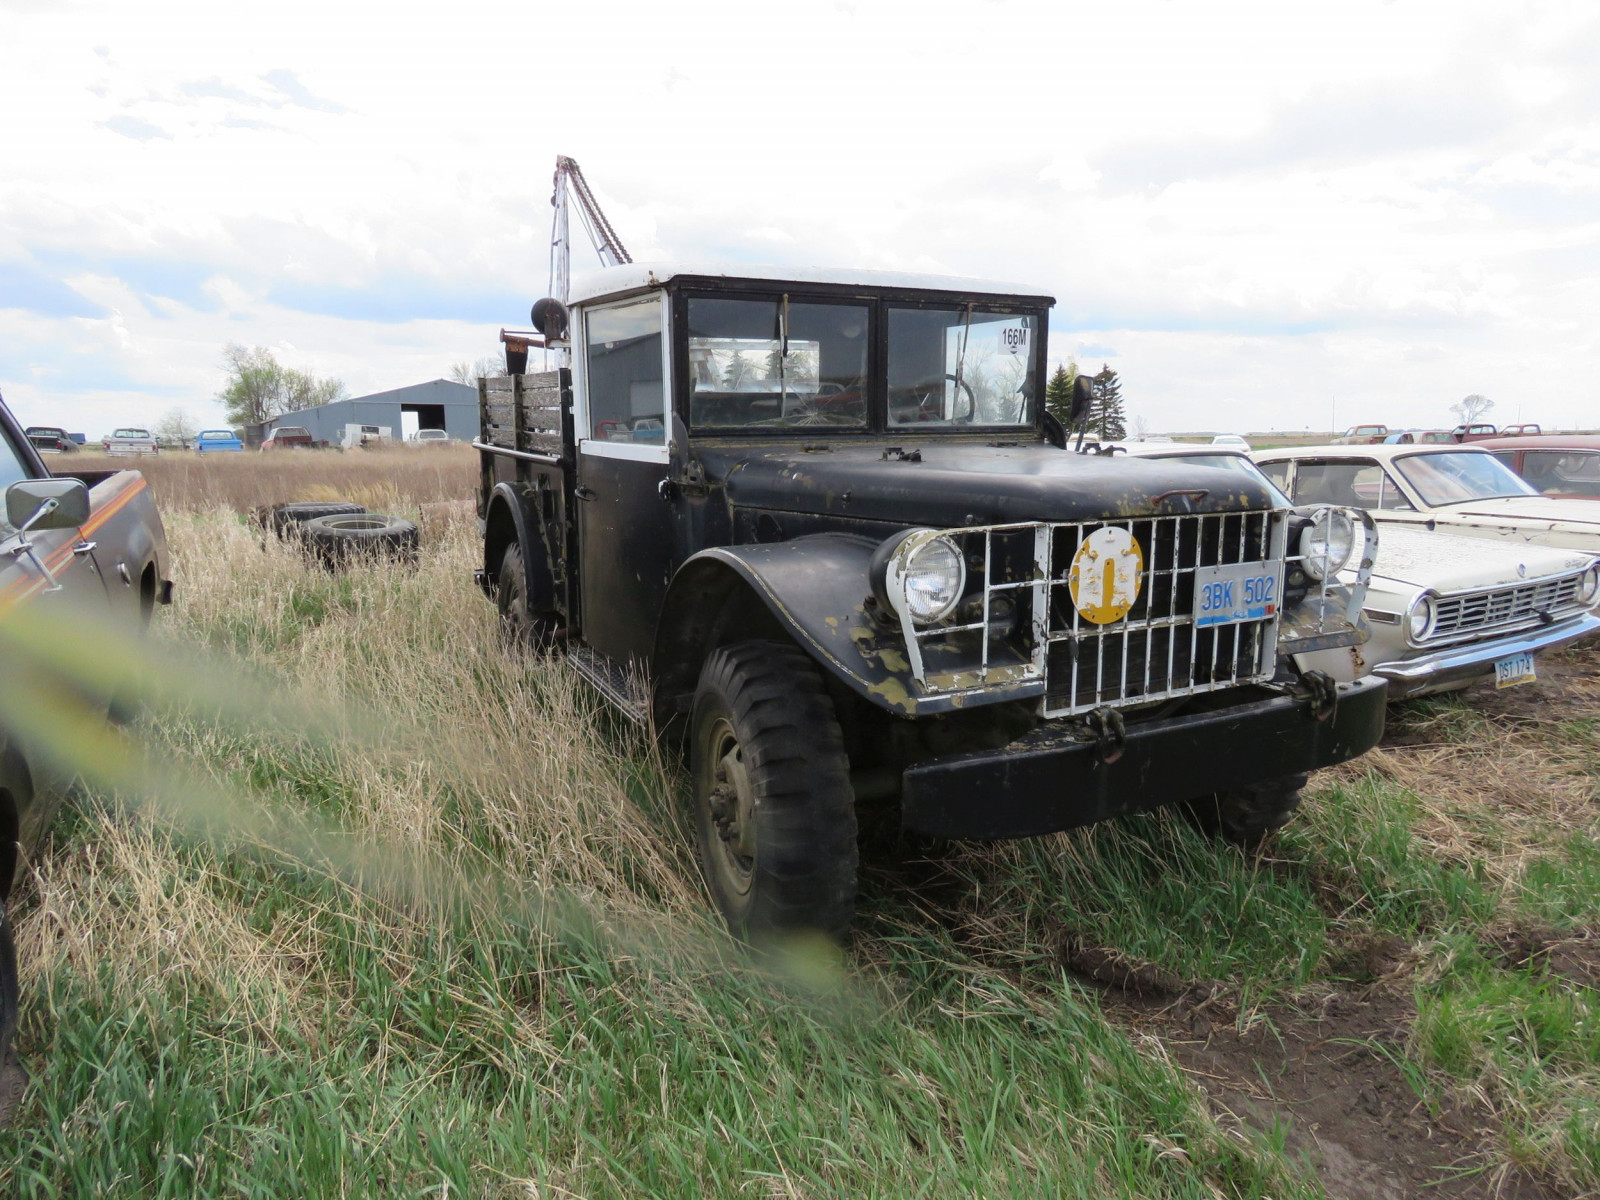 Jeep Wrecker - Image 2